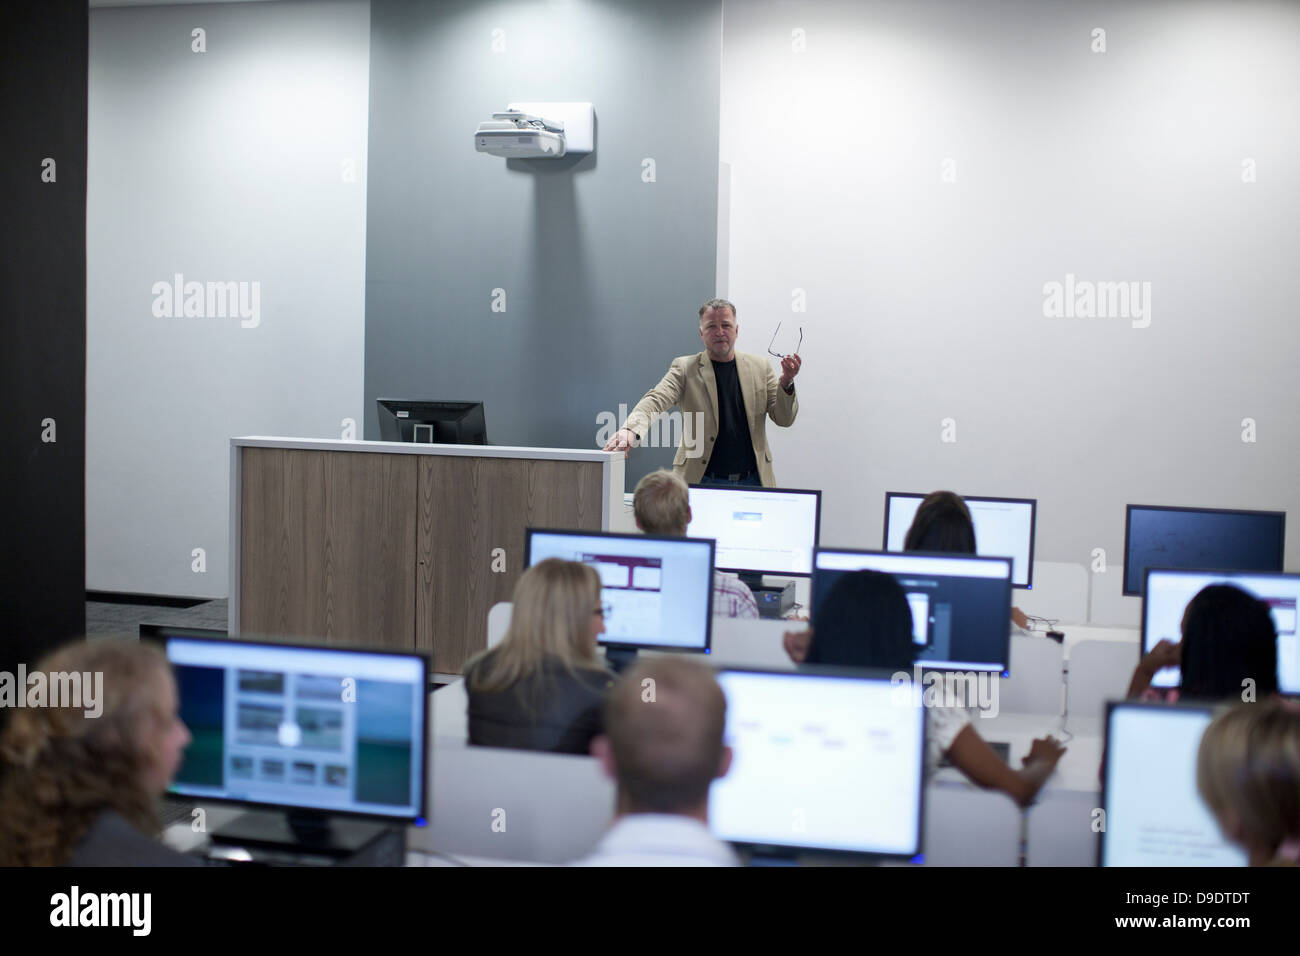 Students using computers in lecture - Stock Image